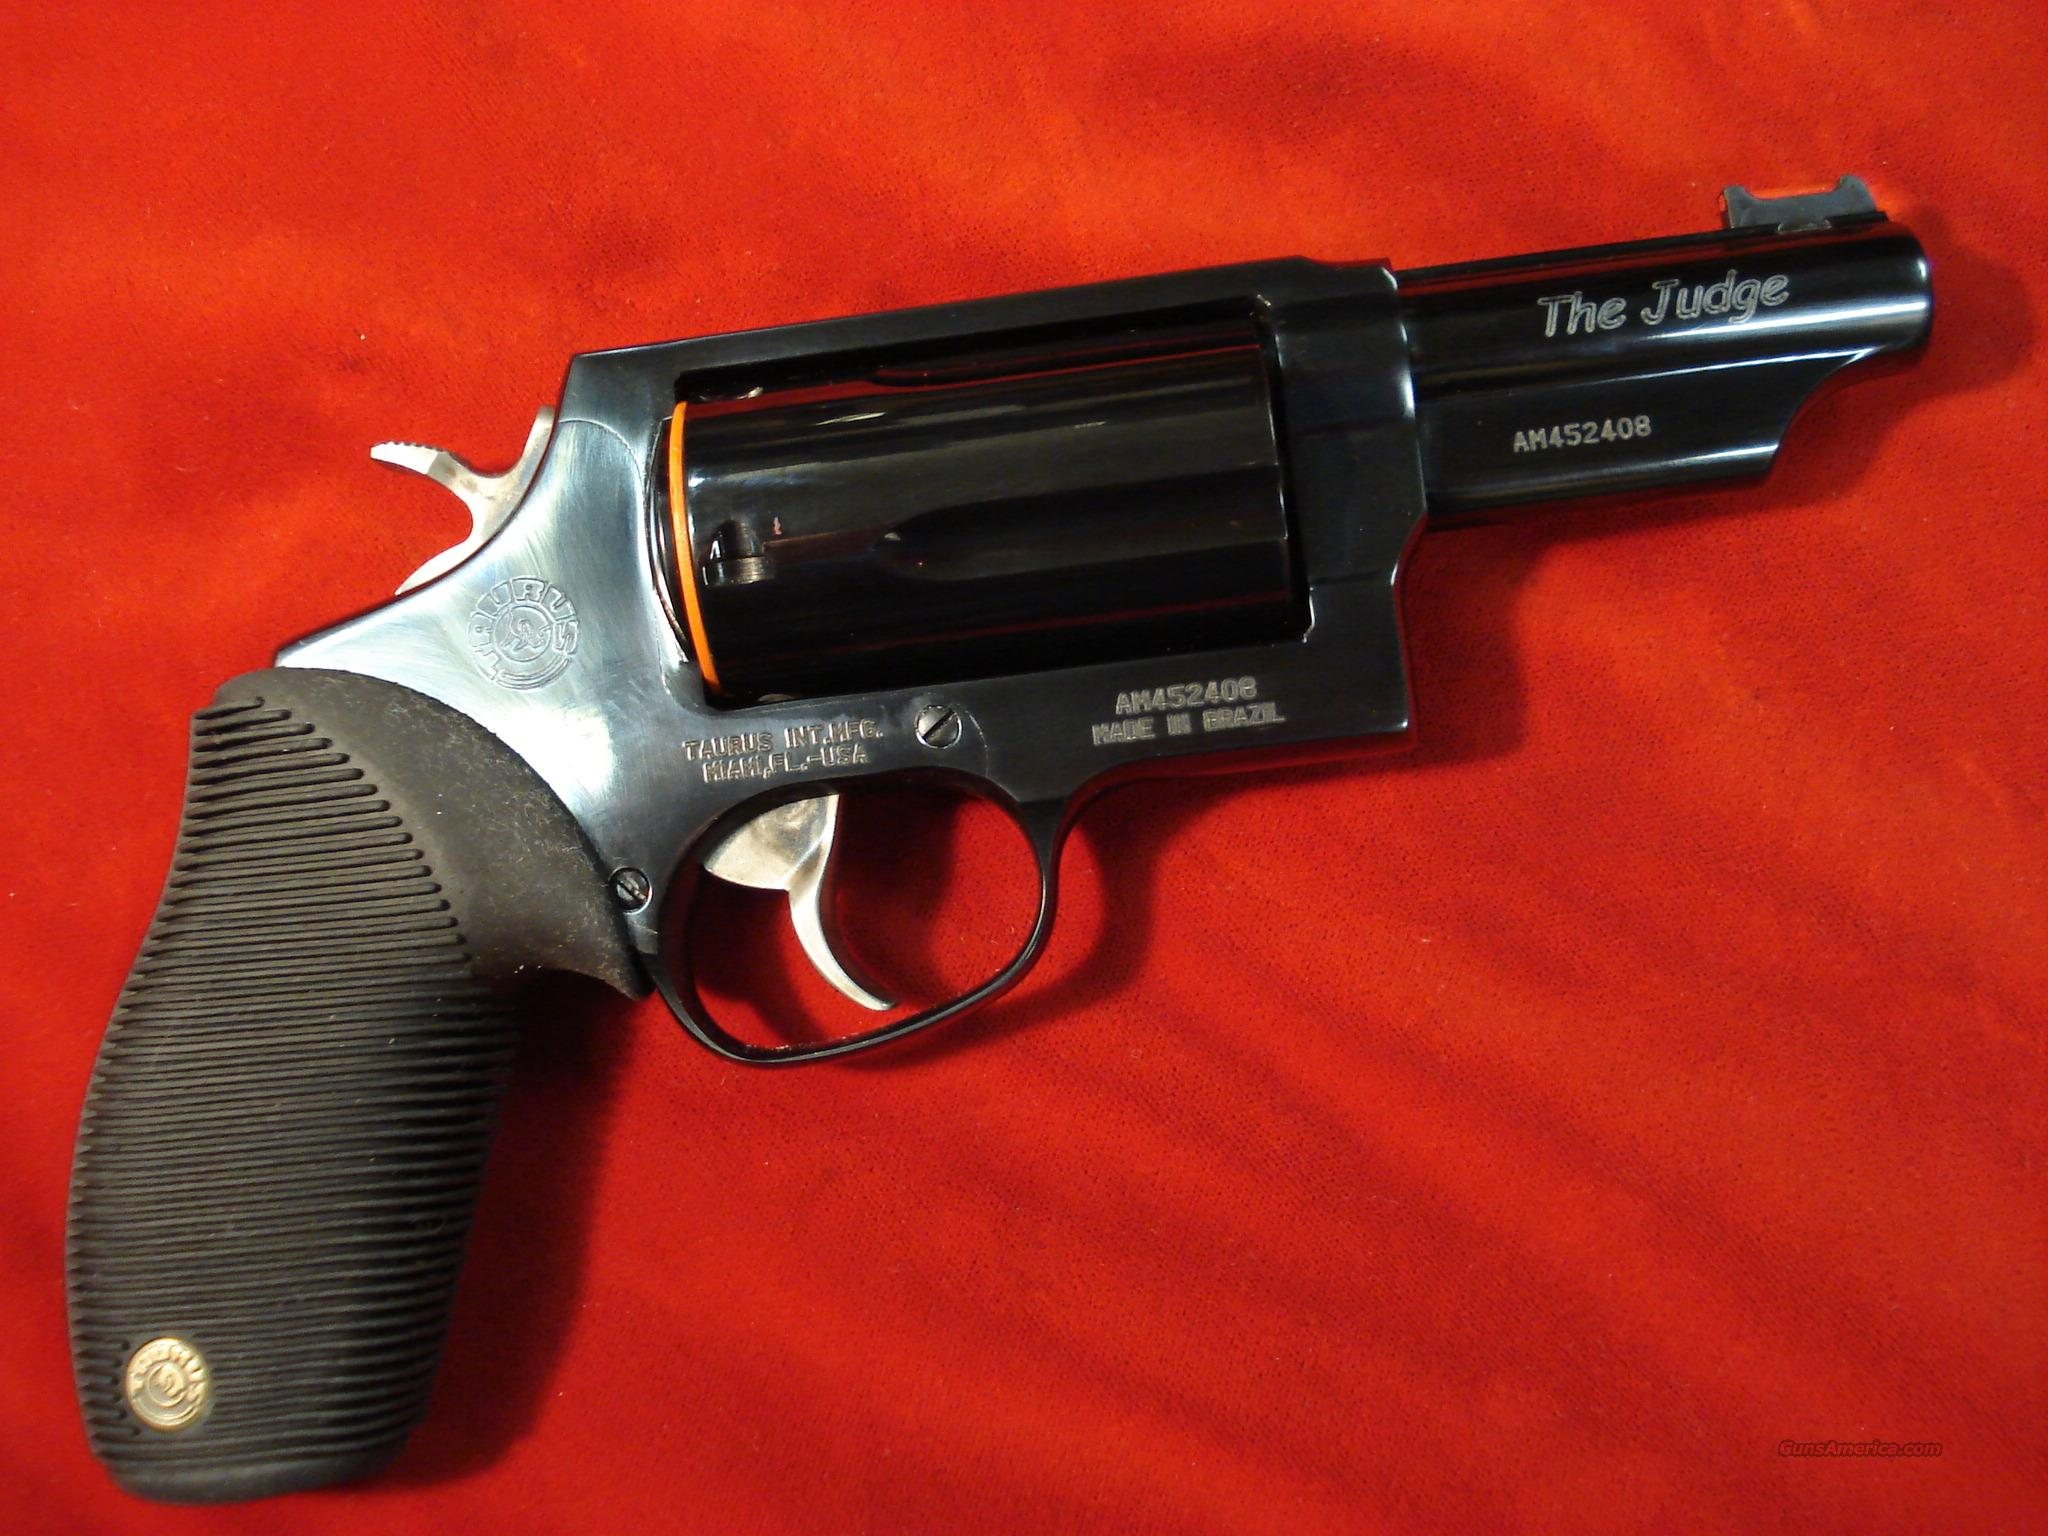 "TAURUS  410G REVOLVER "" THE JUDGE "" POLISHED 3"" BLUE NEW    Guns > Pistols > Taurus Pistols/Revolvers > Revolvers"